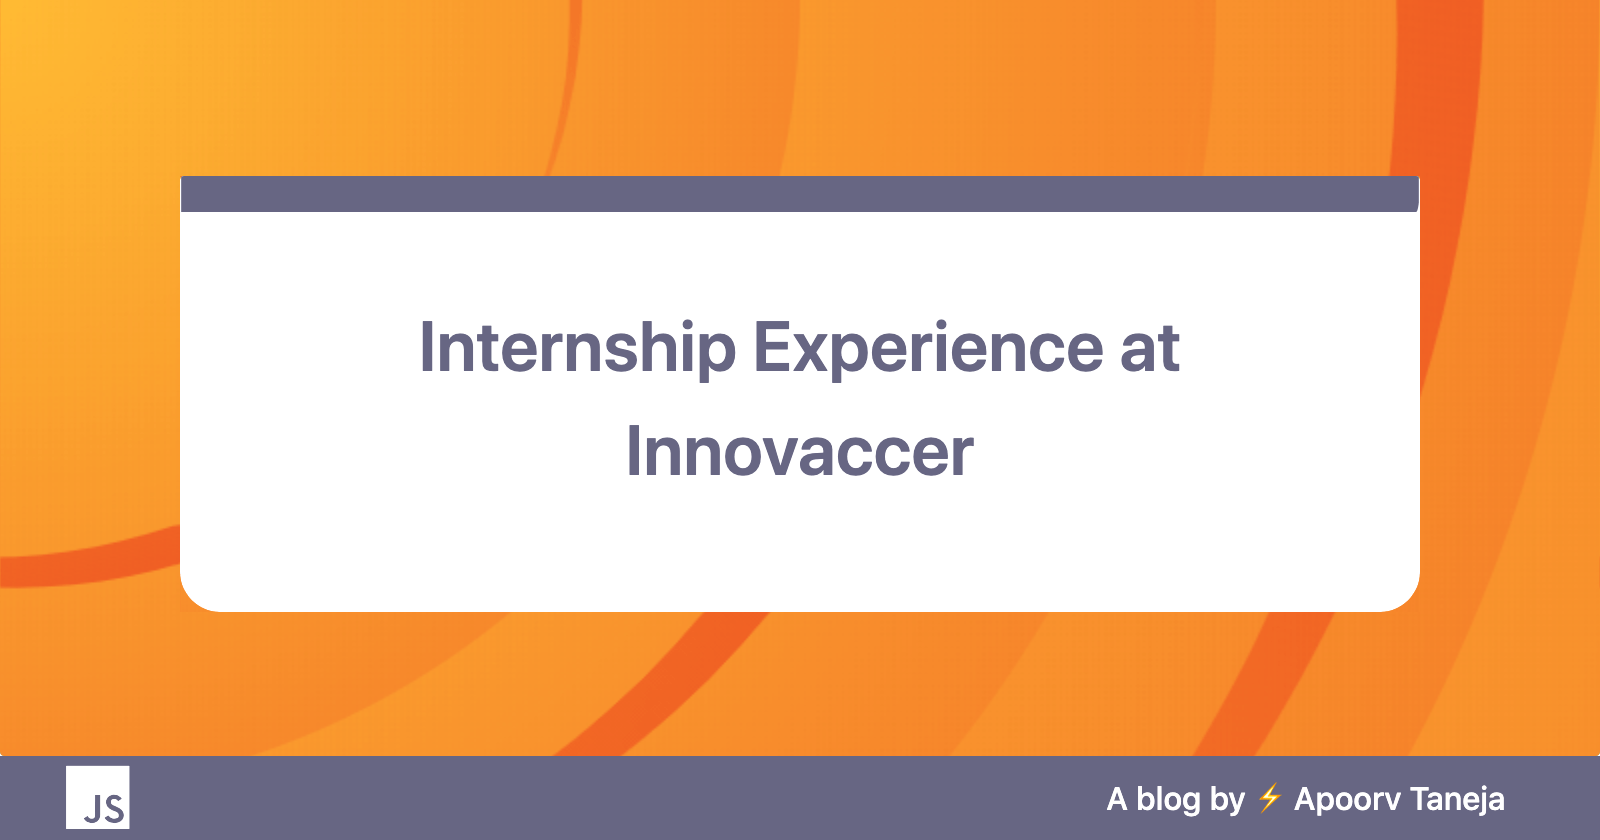 From getting an Internship to Full-time offer at Innovaccer